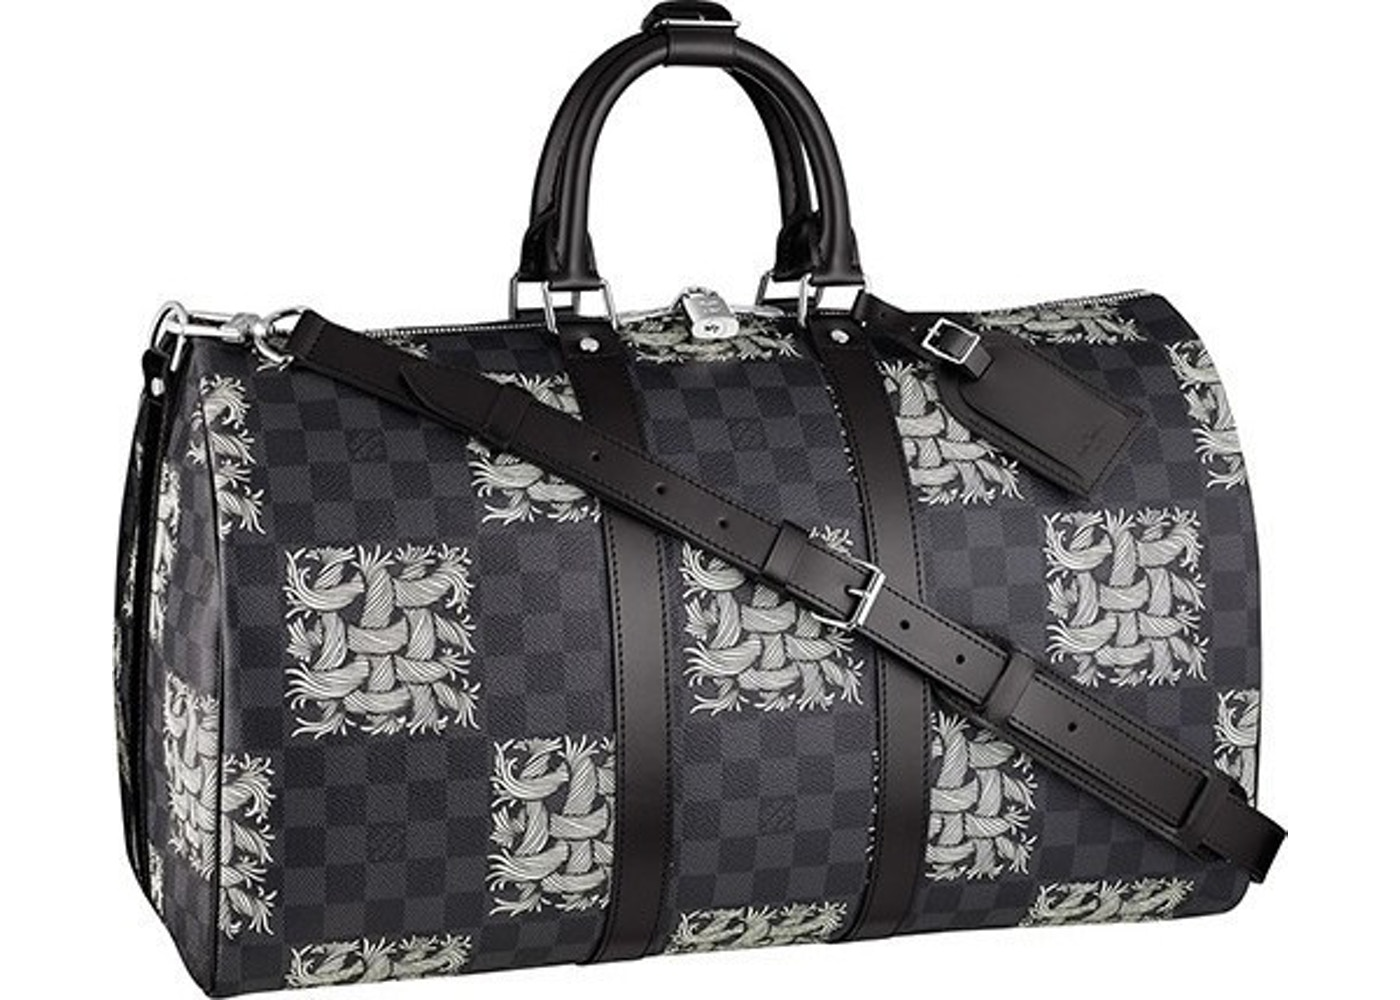 1db800a5118 Sell. or Ask. View All Bids. Louis Vuitton x Christopher Nemeth Keepall  Bandouliere Damier Graphite Rope 55 Black Multicolor